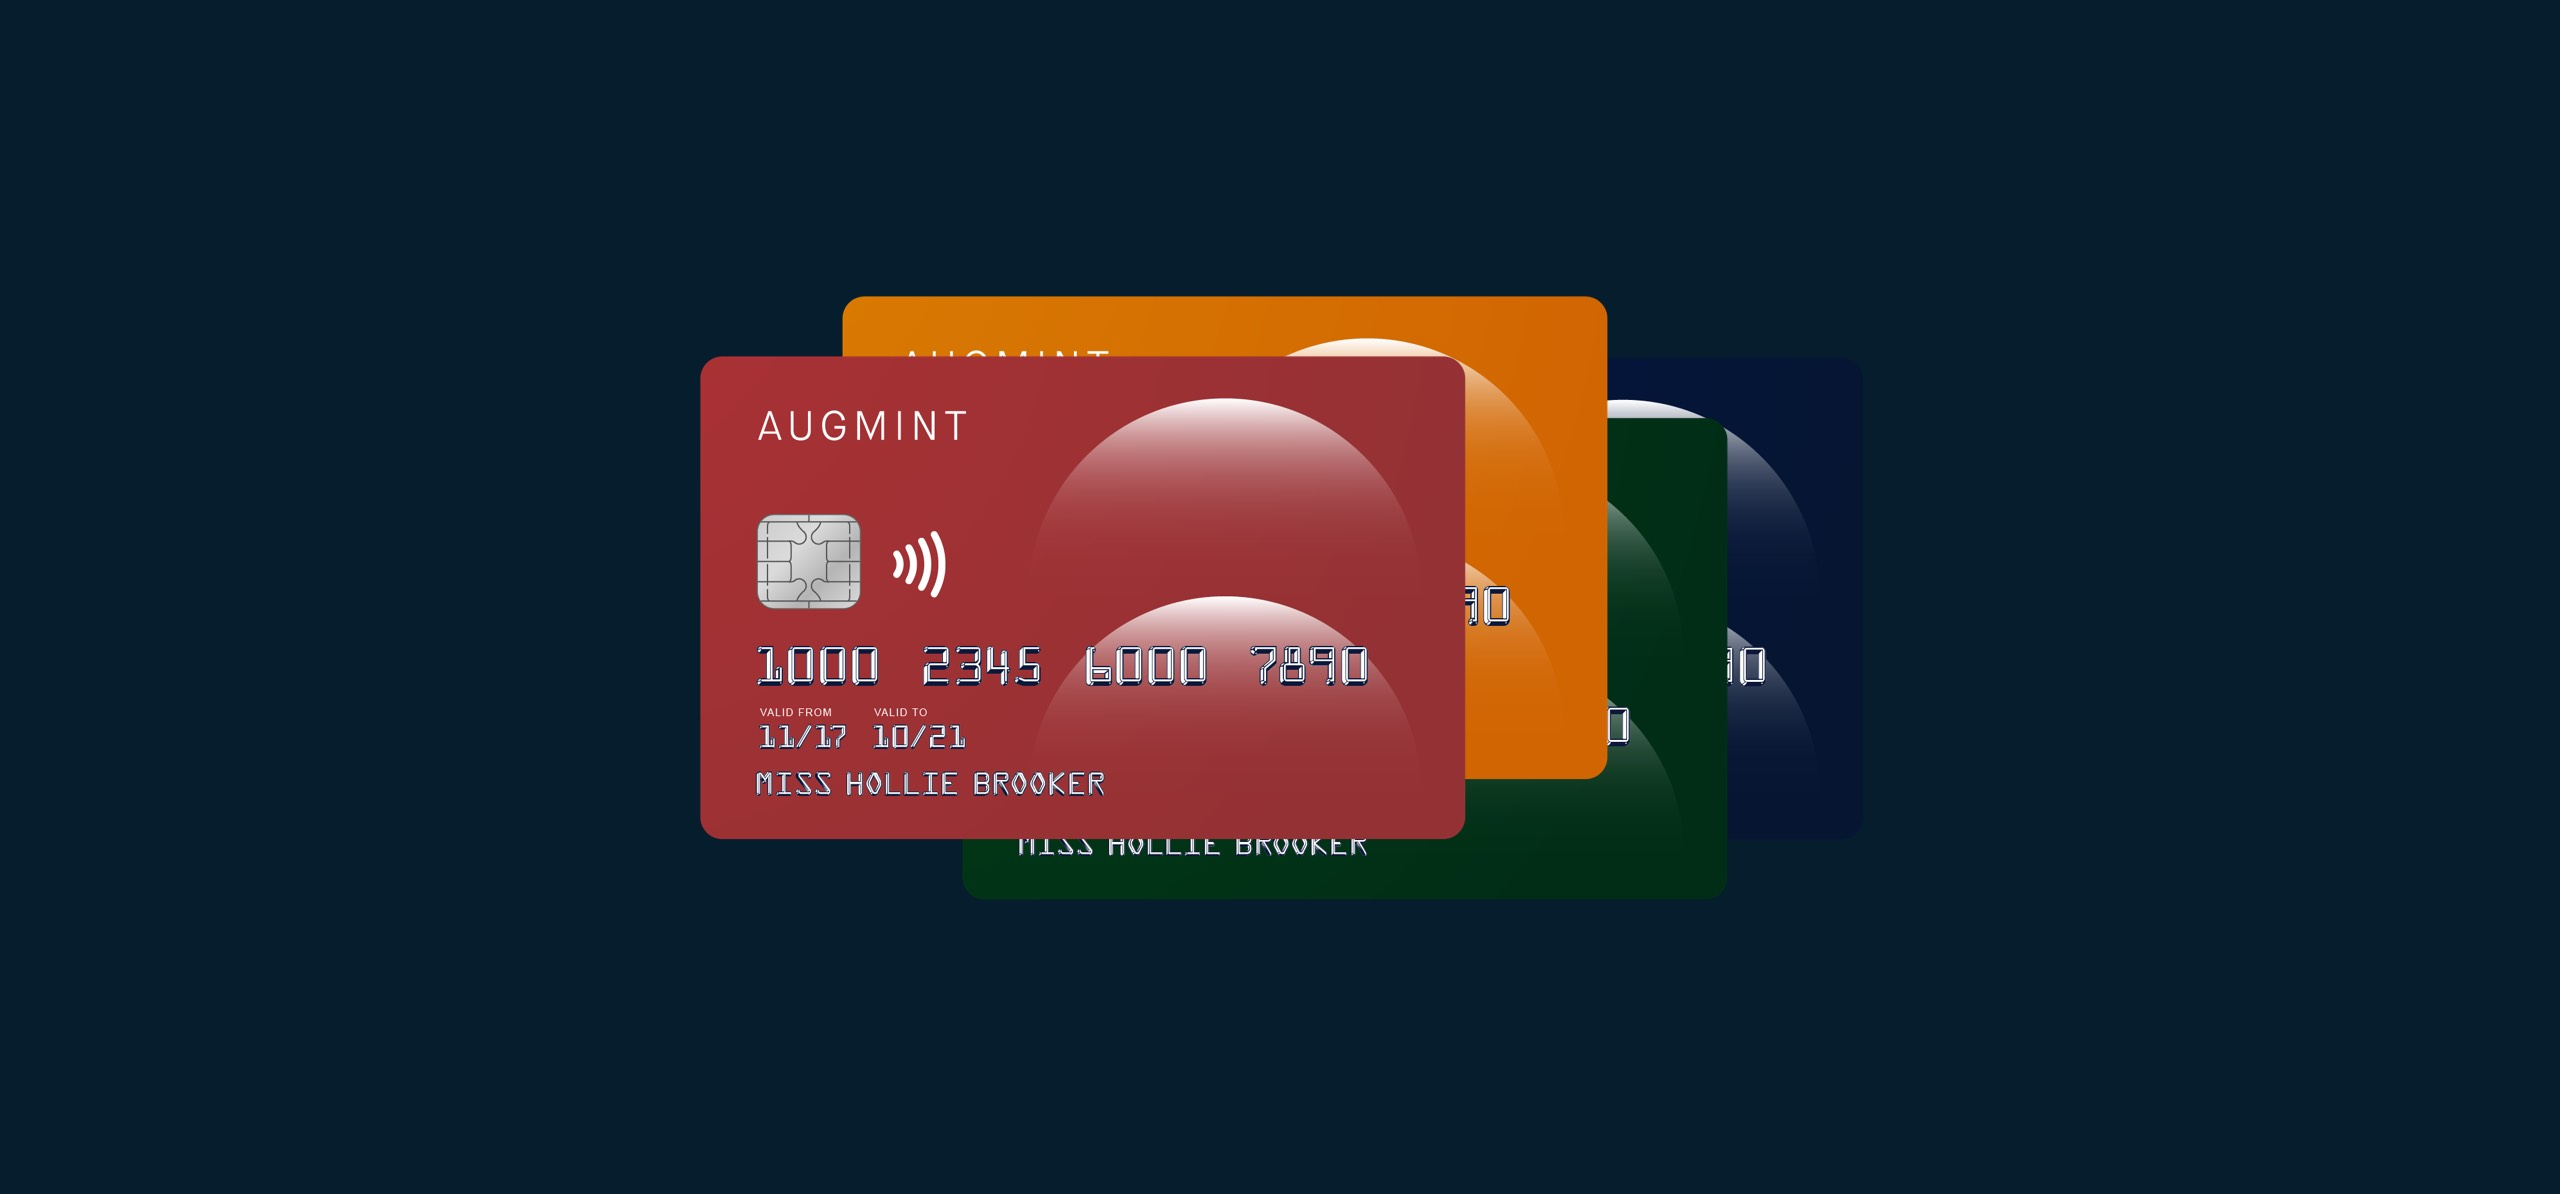 augmint_cards